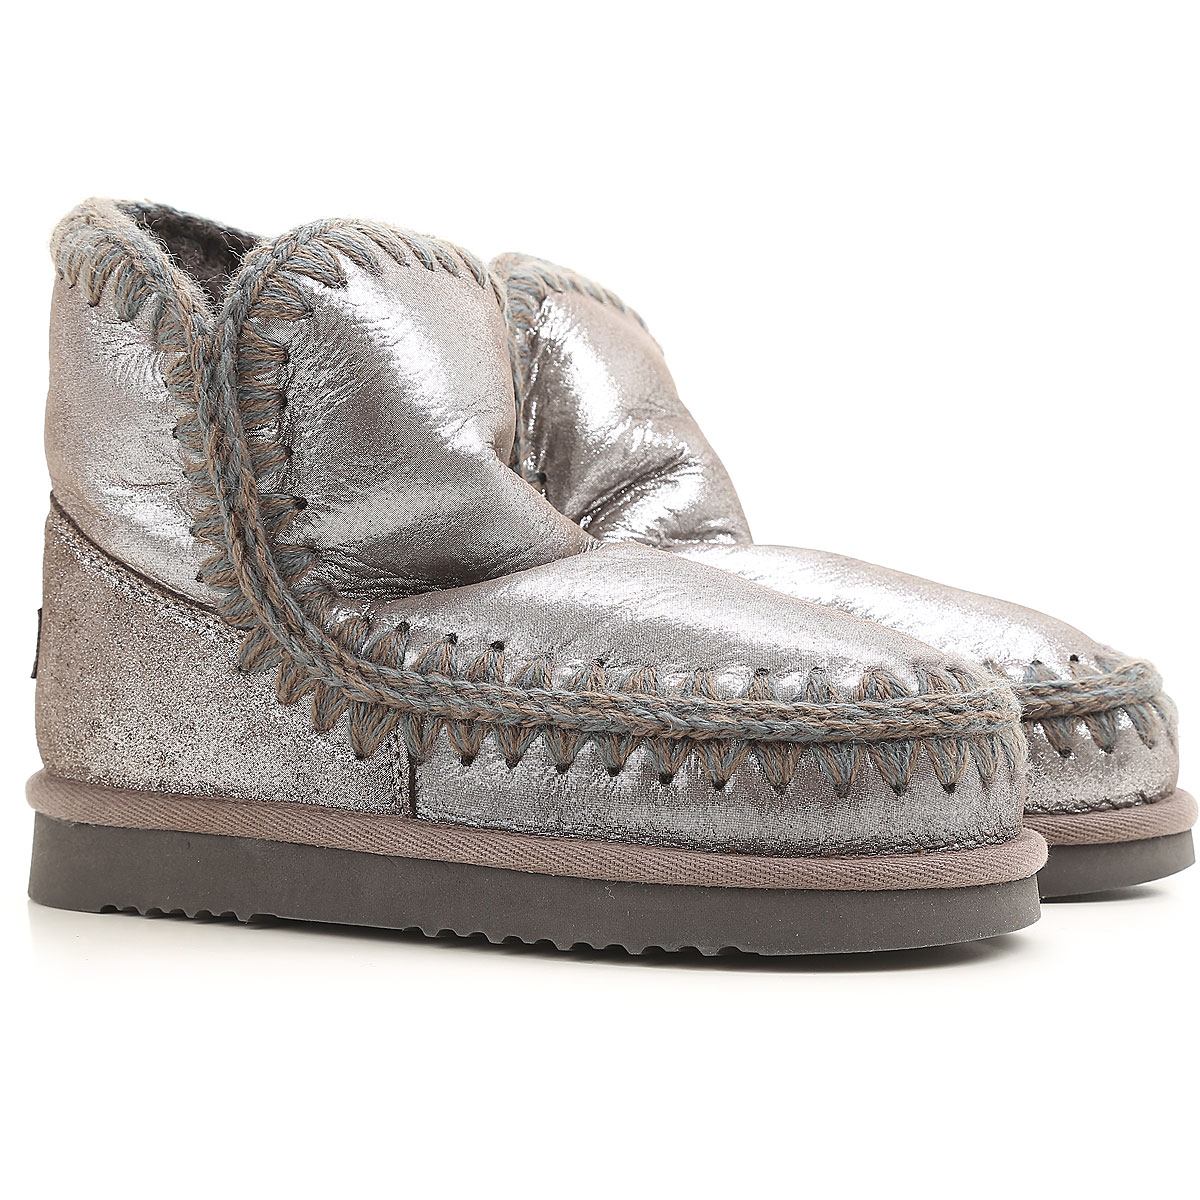 Mou Boots for Women, Booties On Sale, Pewter, Fabric, 2019, EUR 40 - UK 7 - USA 9.5 EUR 41 - UK 8 - USA 10.5